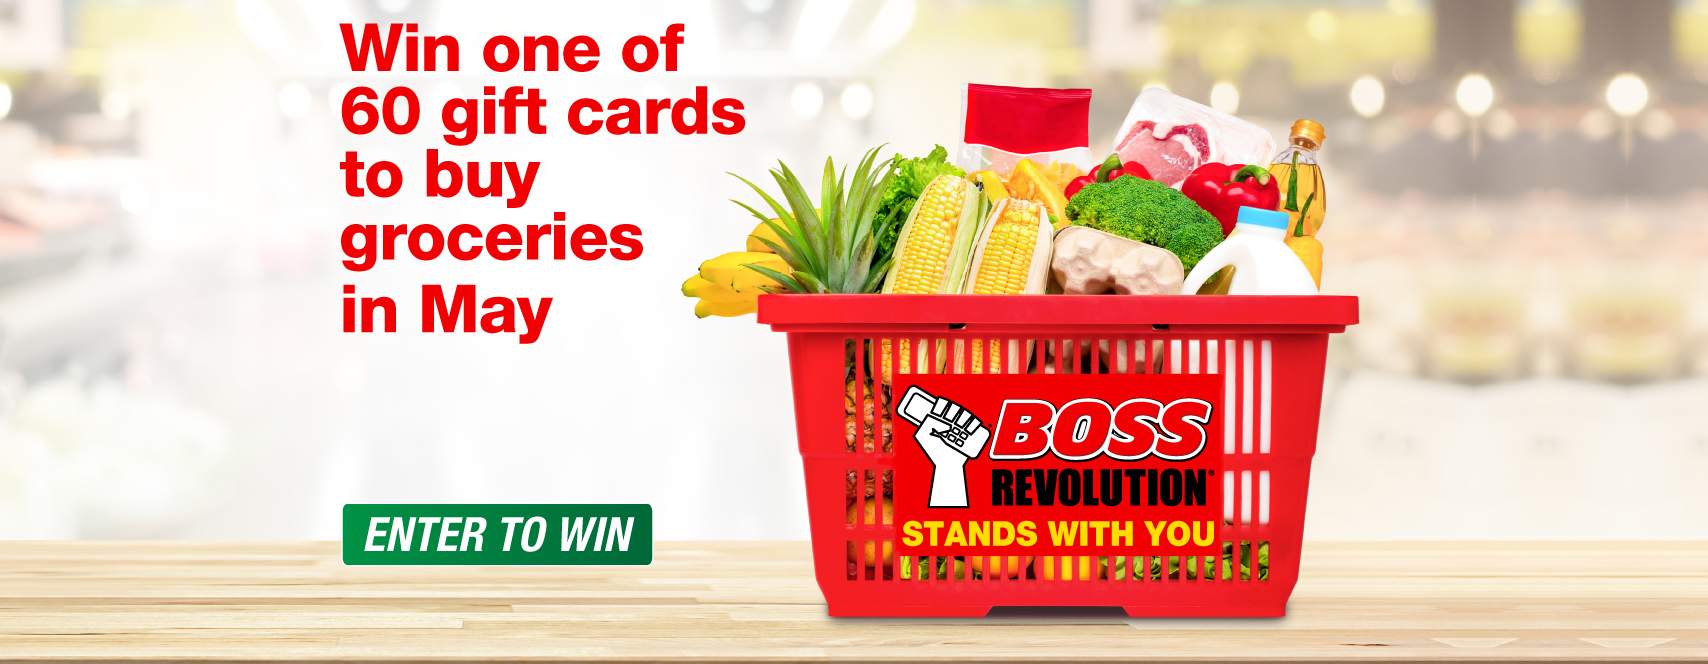 Enter for a chance to win a $50 gift card for food shopping with BOSS Revolution